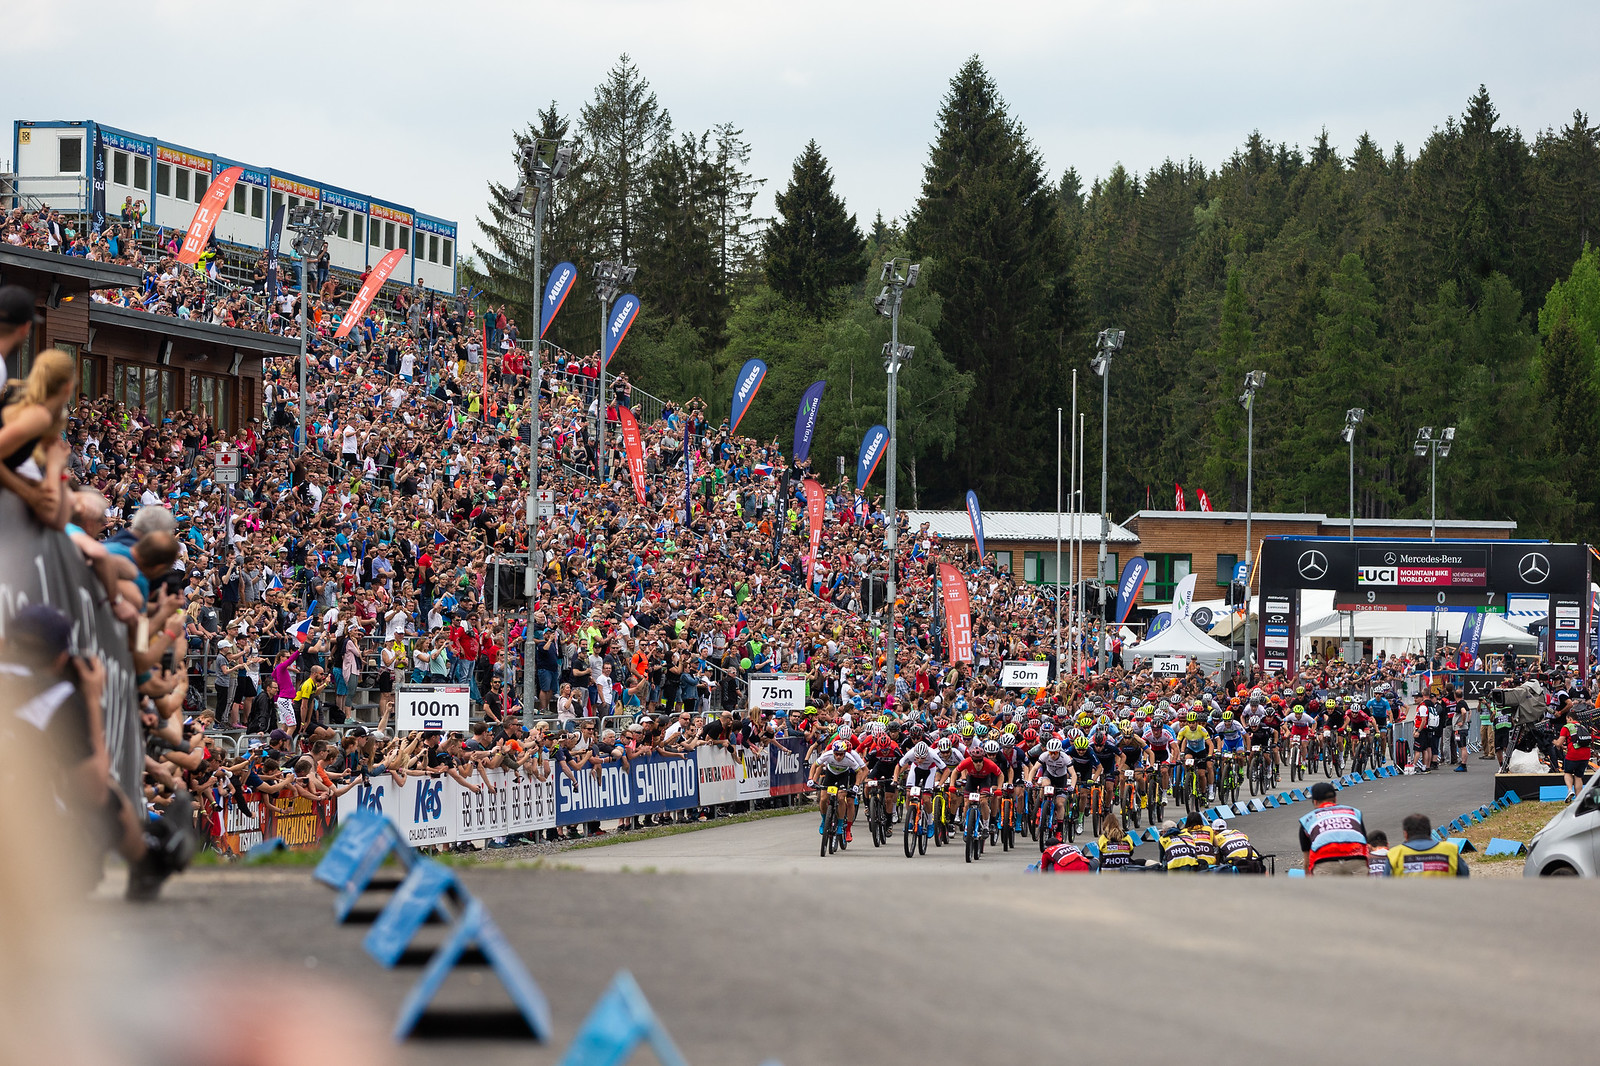 2020 MERCEDES-BENZ UCI MTB WORLD CUP NMNM POSTPONED!